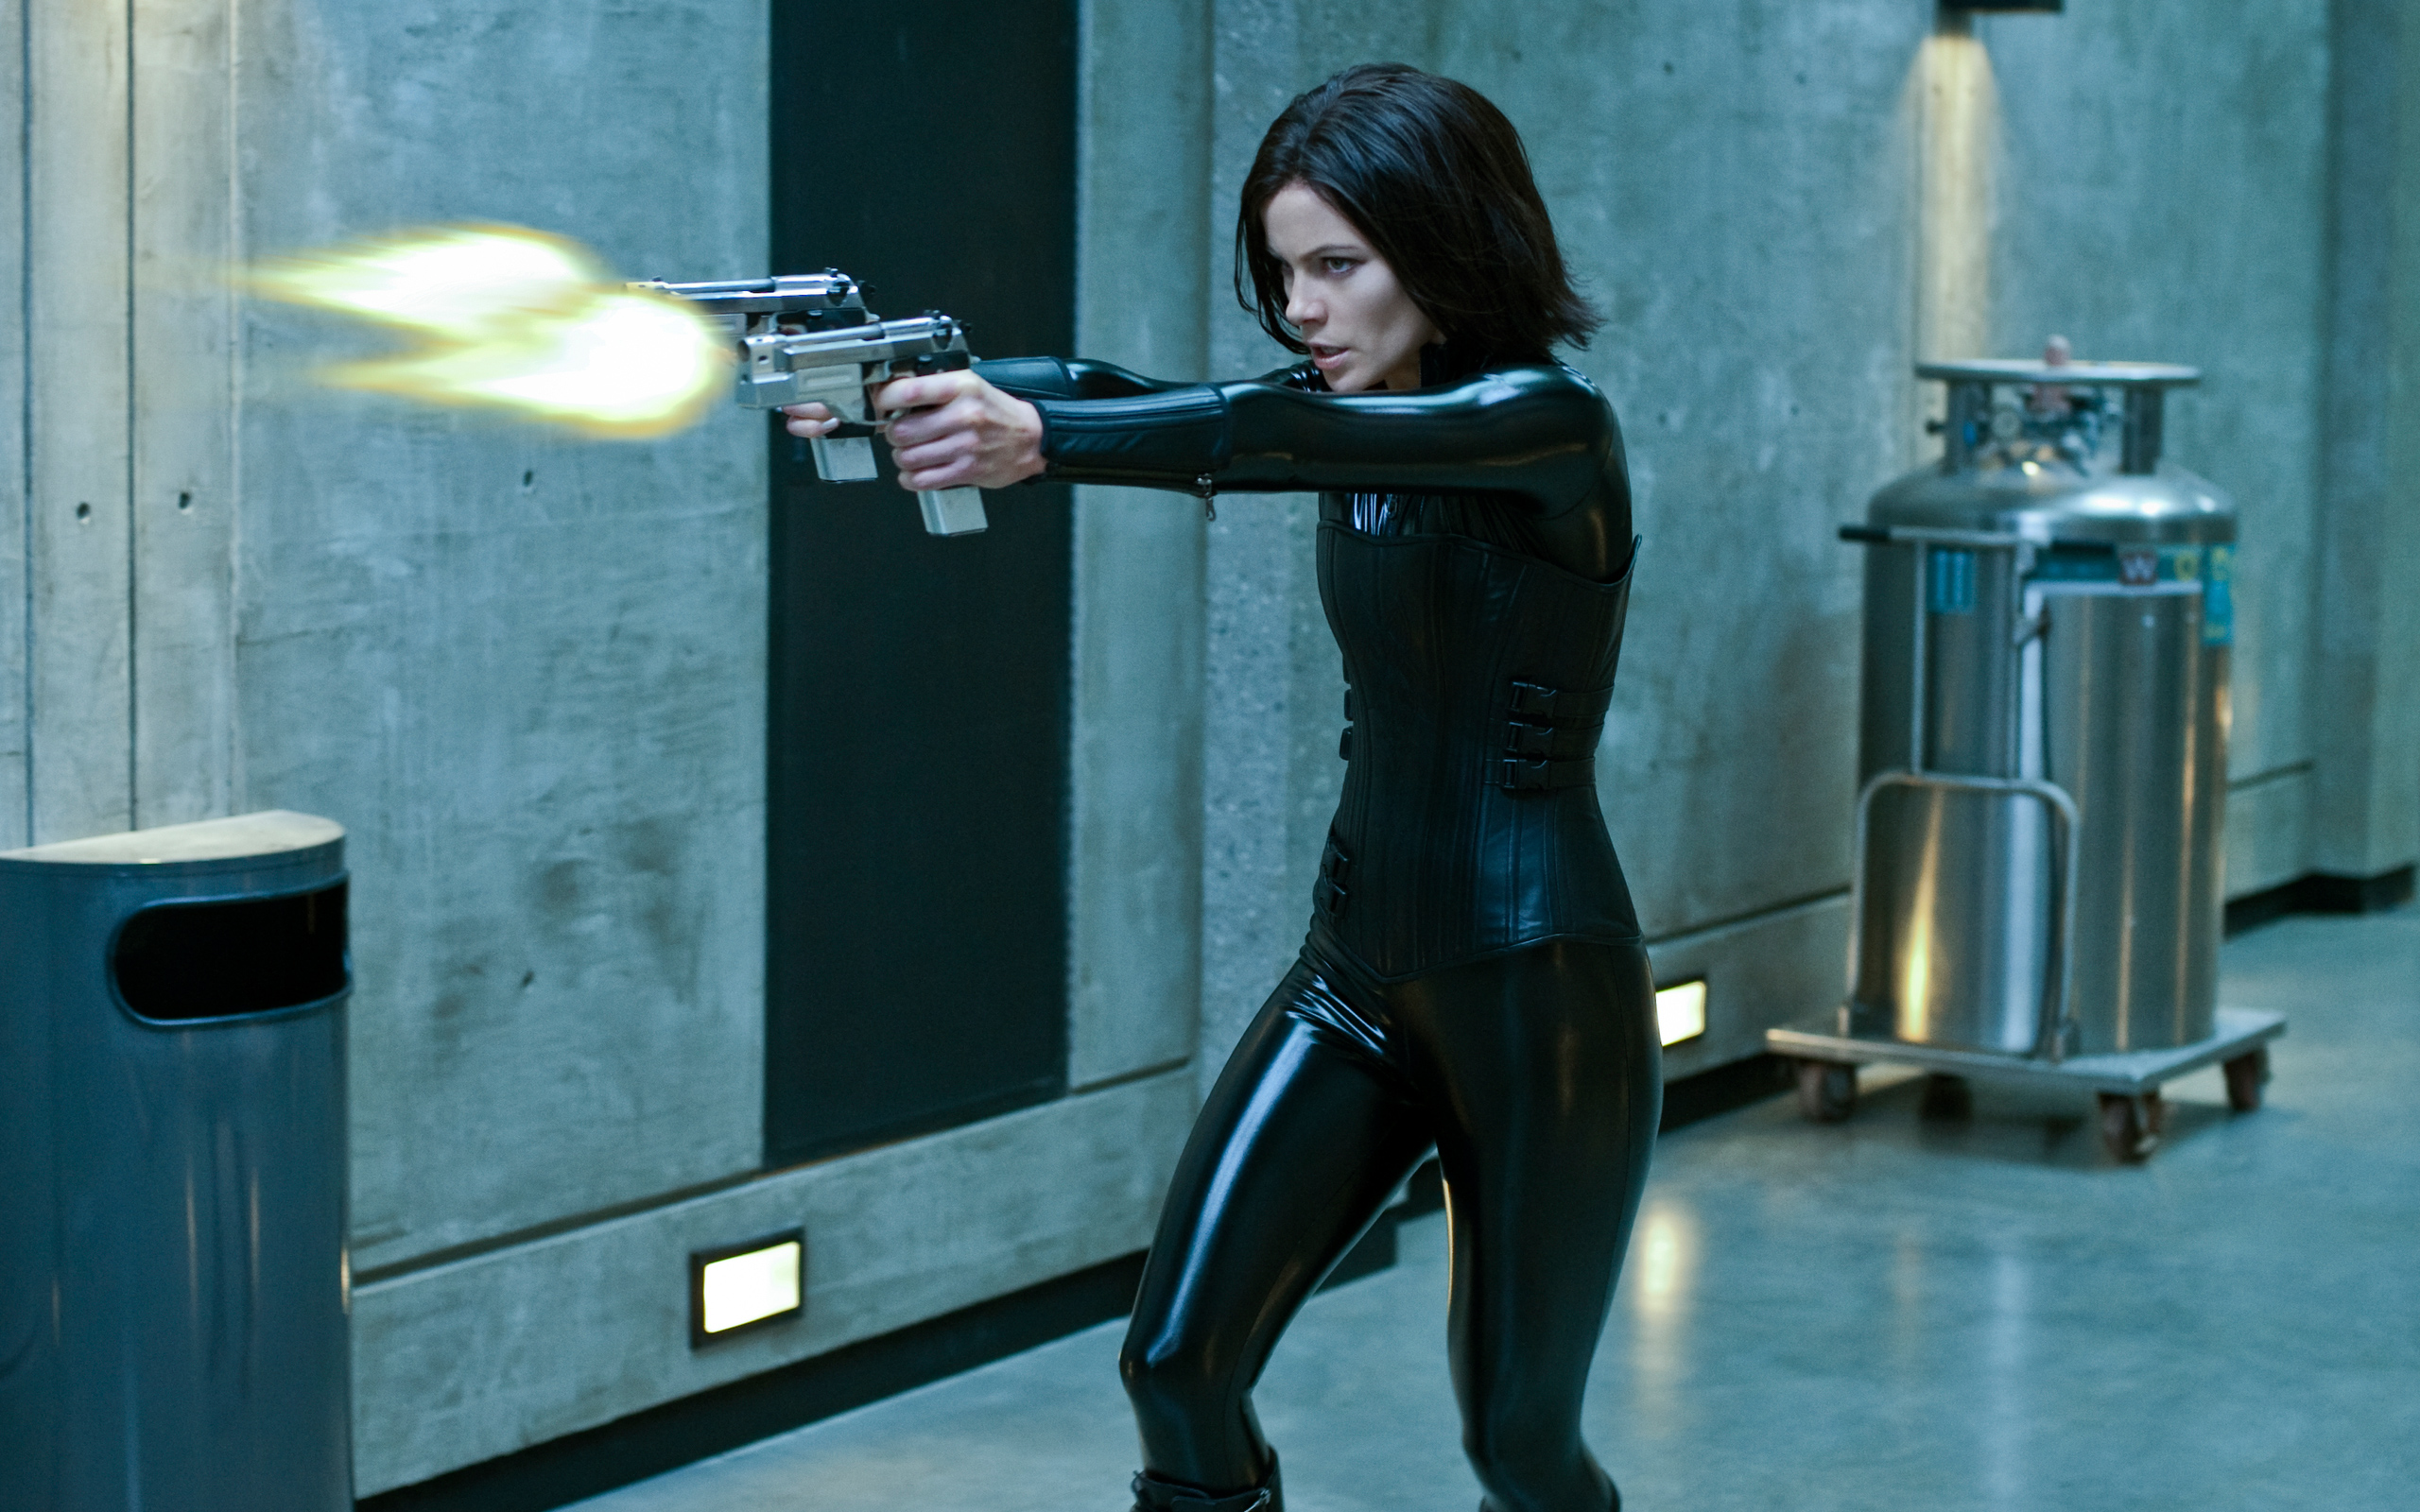 Kate Beckinsale in Underworld Awakening 1115.6 Kb